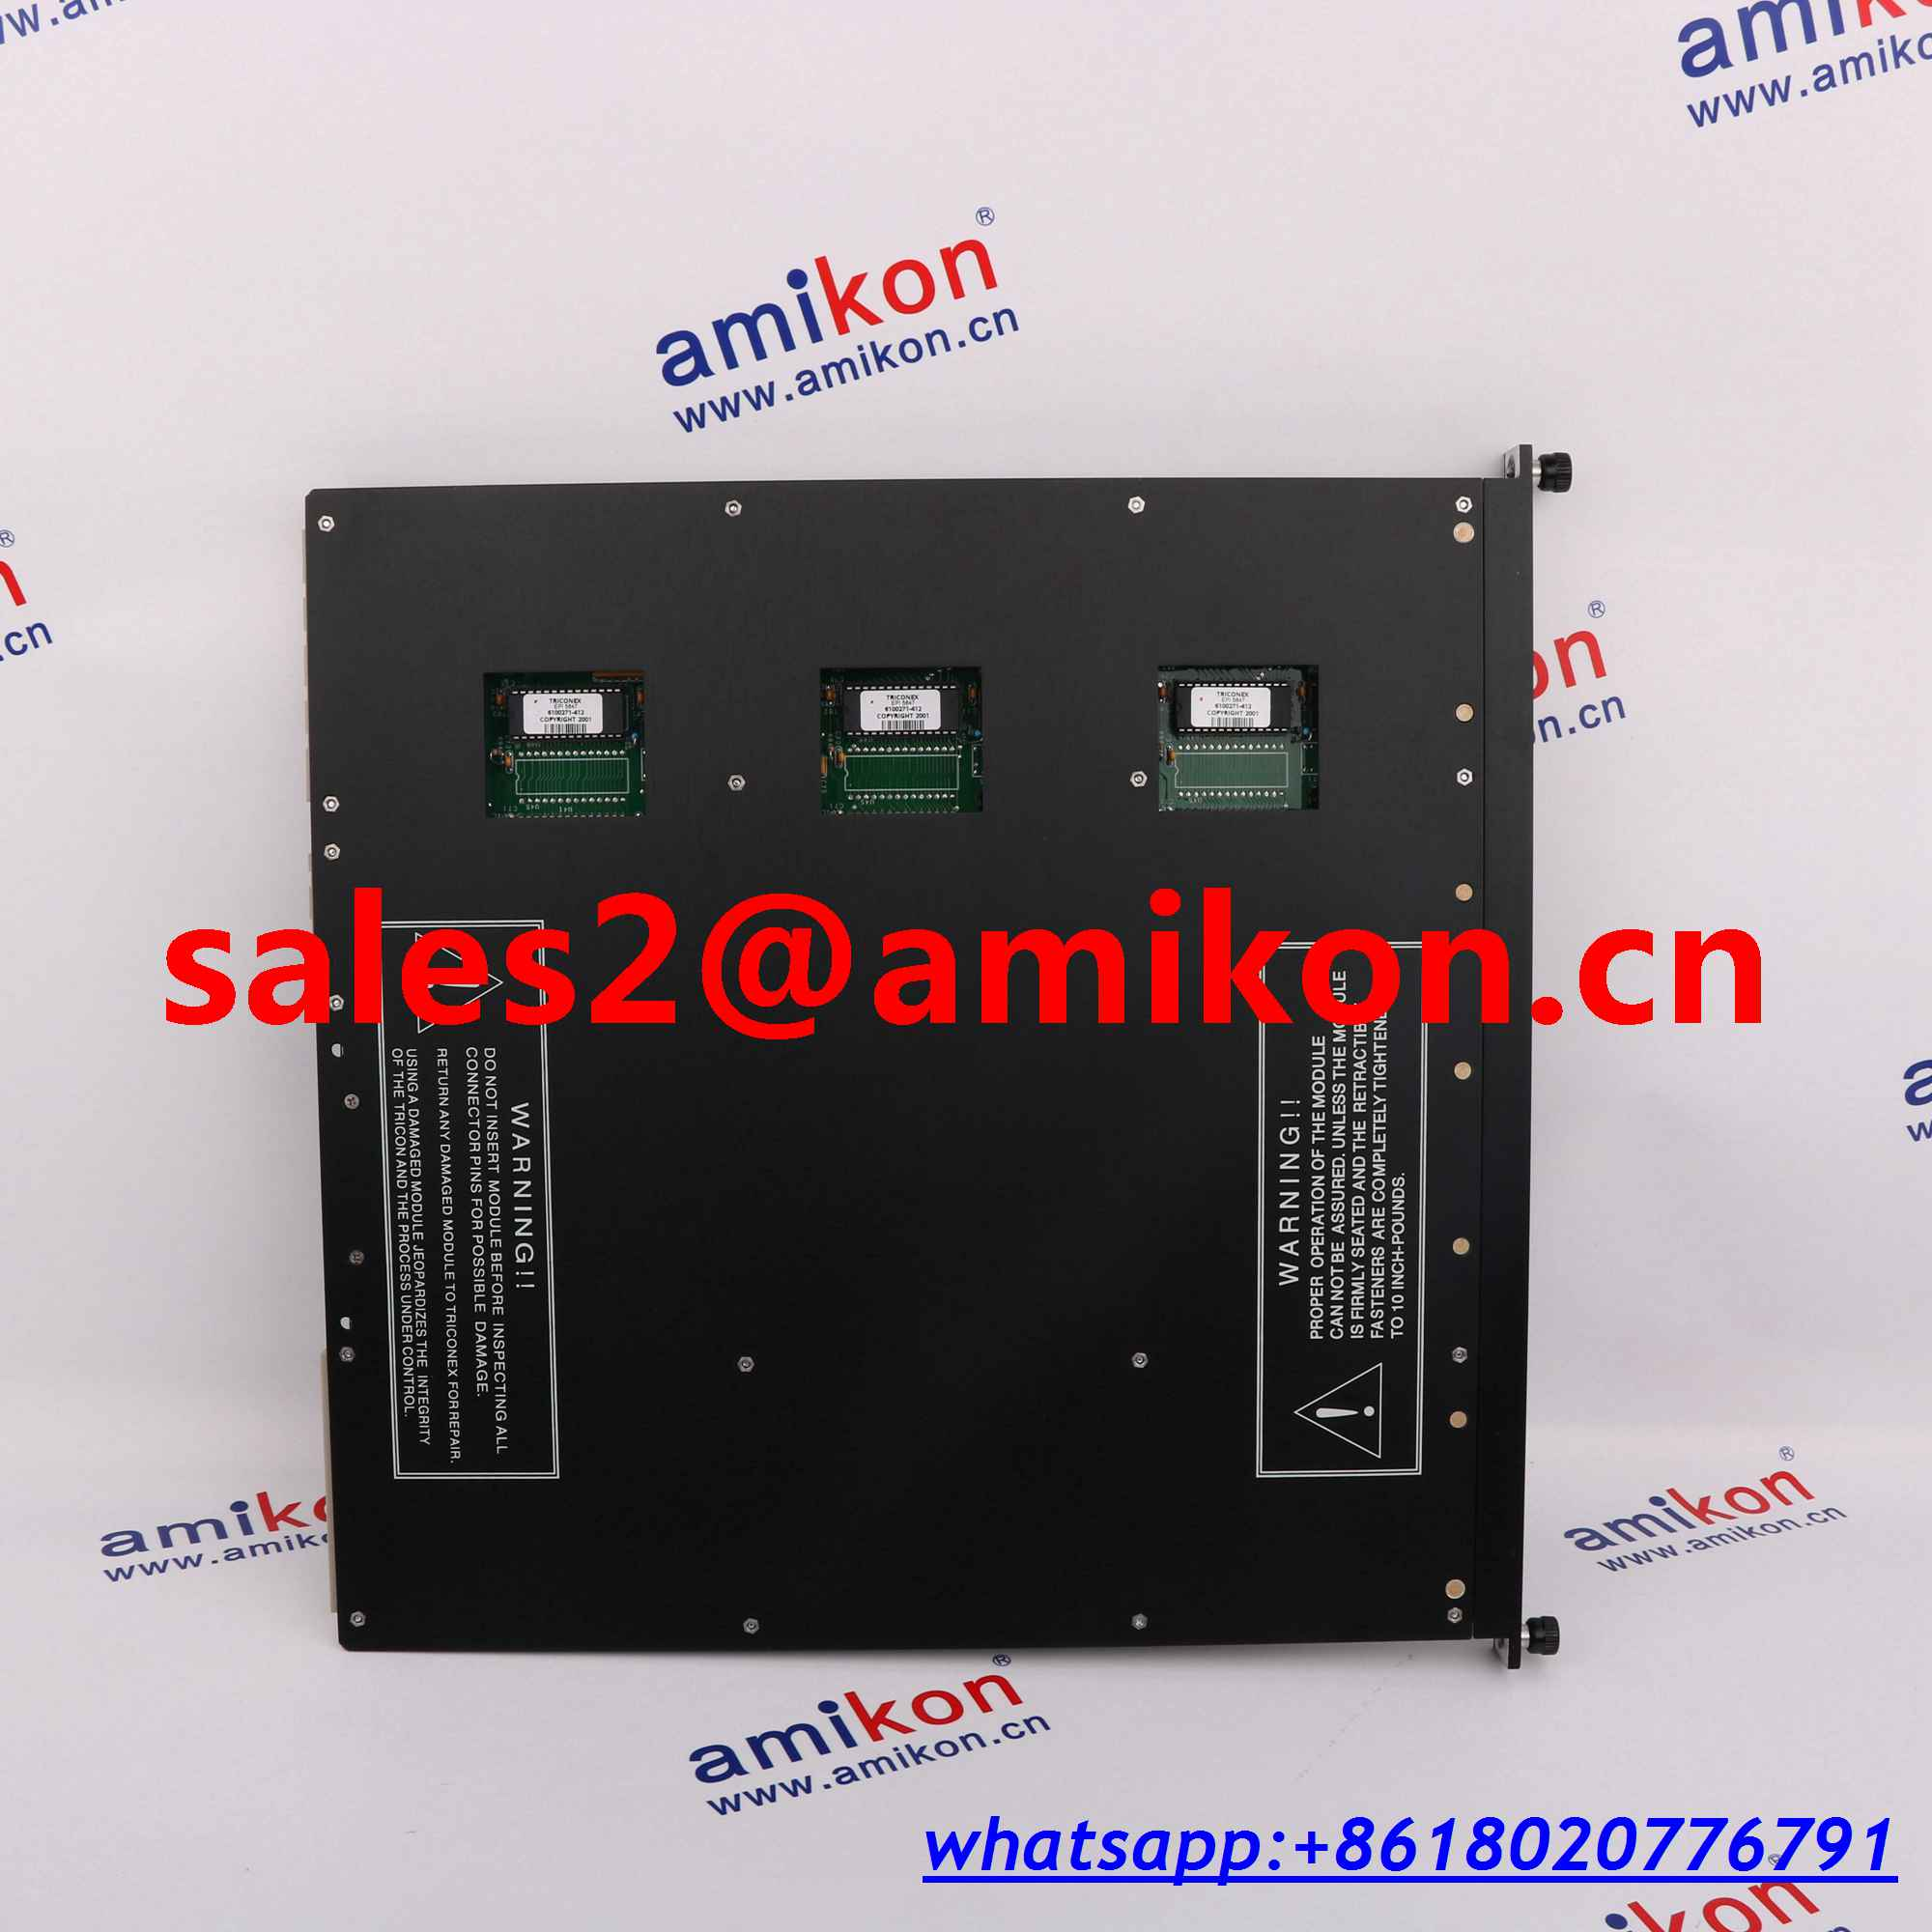 Triconex 5451 Solid State Relay Output Tripak 1 Control